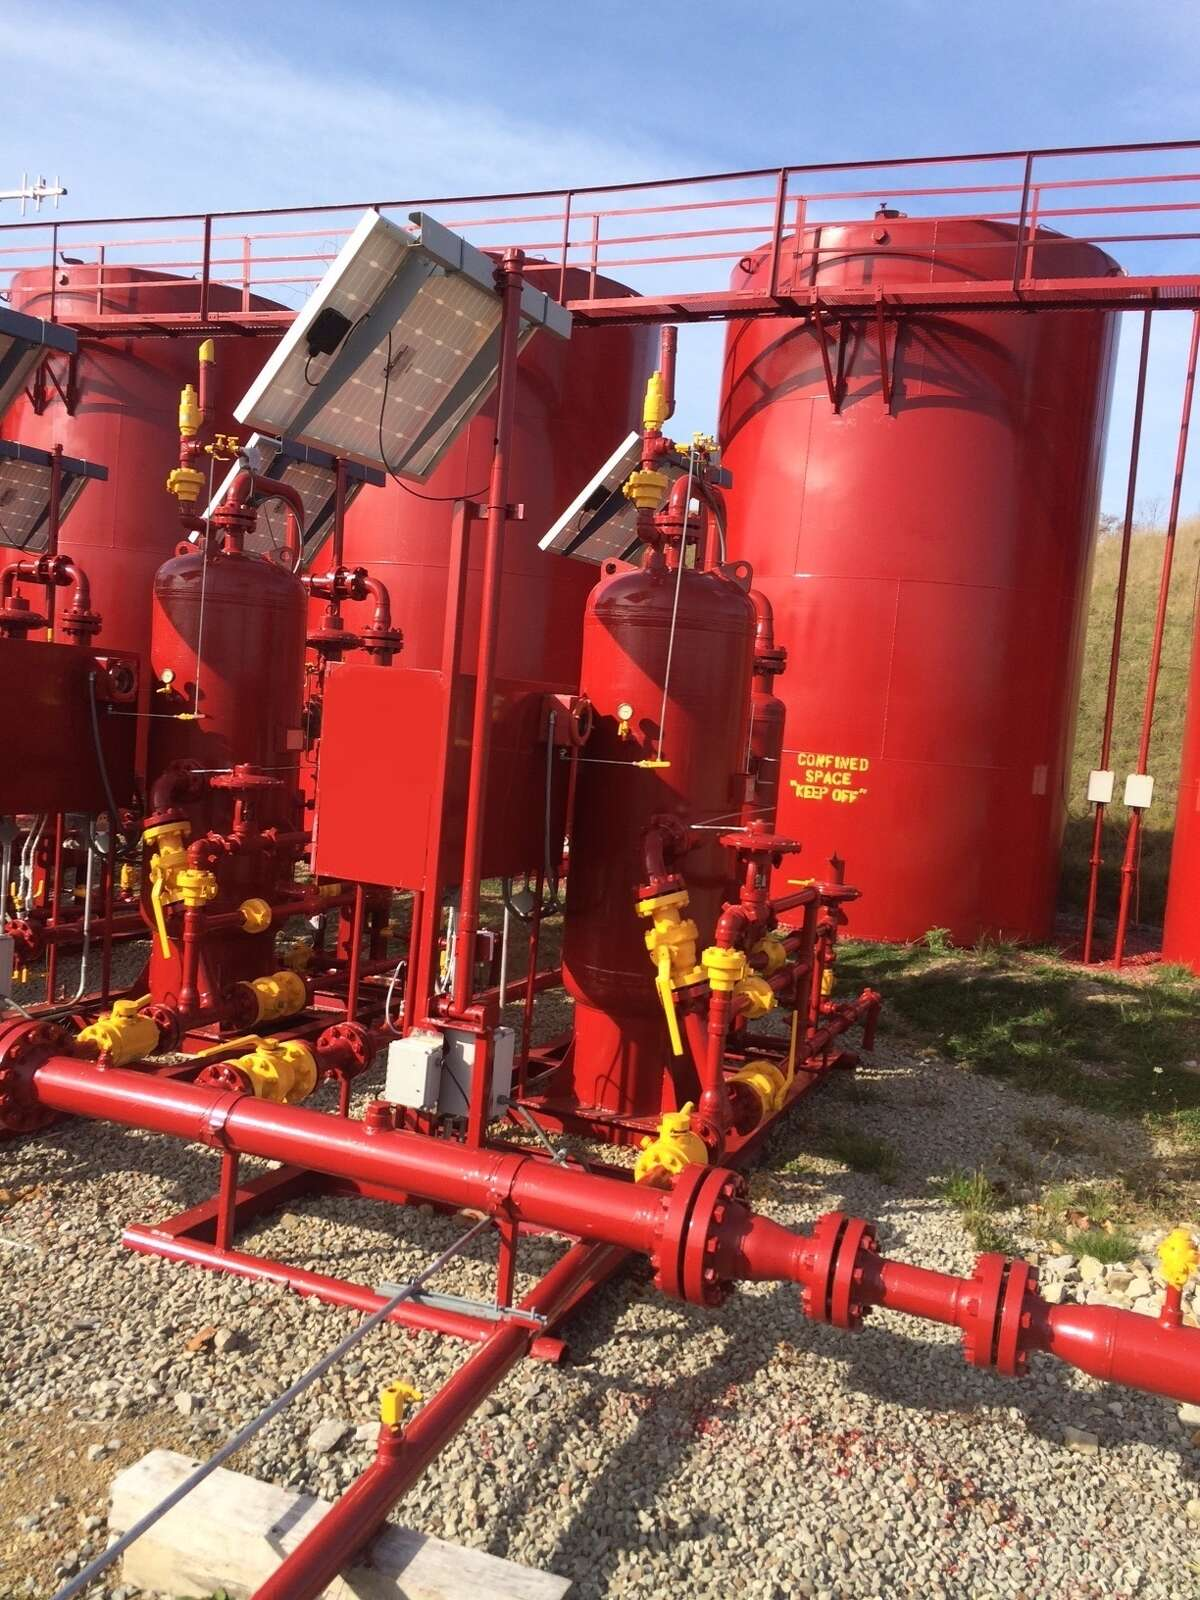 At a well site in Pennsylvania, Vivione Biosciences uses its Rapid-B system, developed for food safety testing and clinical evaluations of blood and urine samples, to identify bacteria that can complicate hydraulic fracturing.